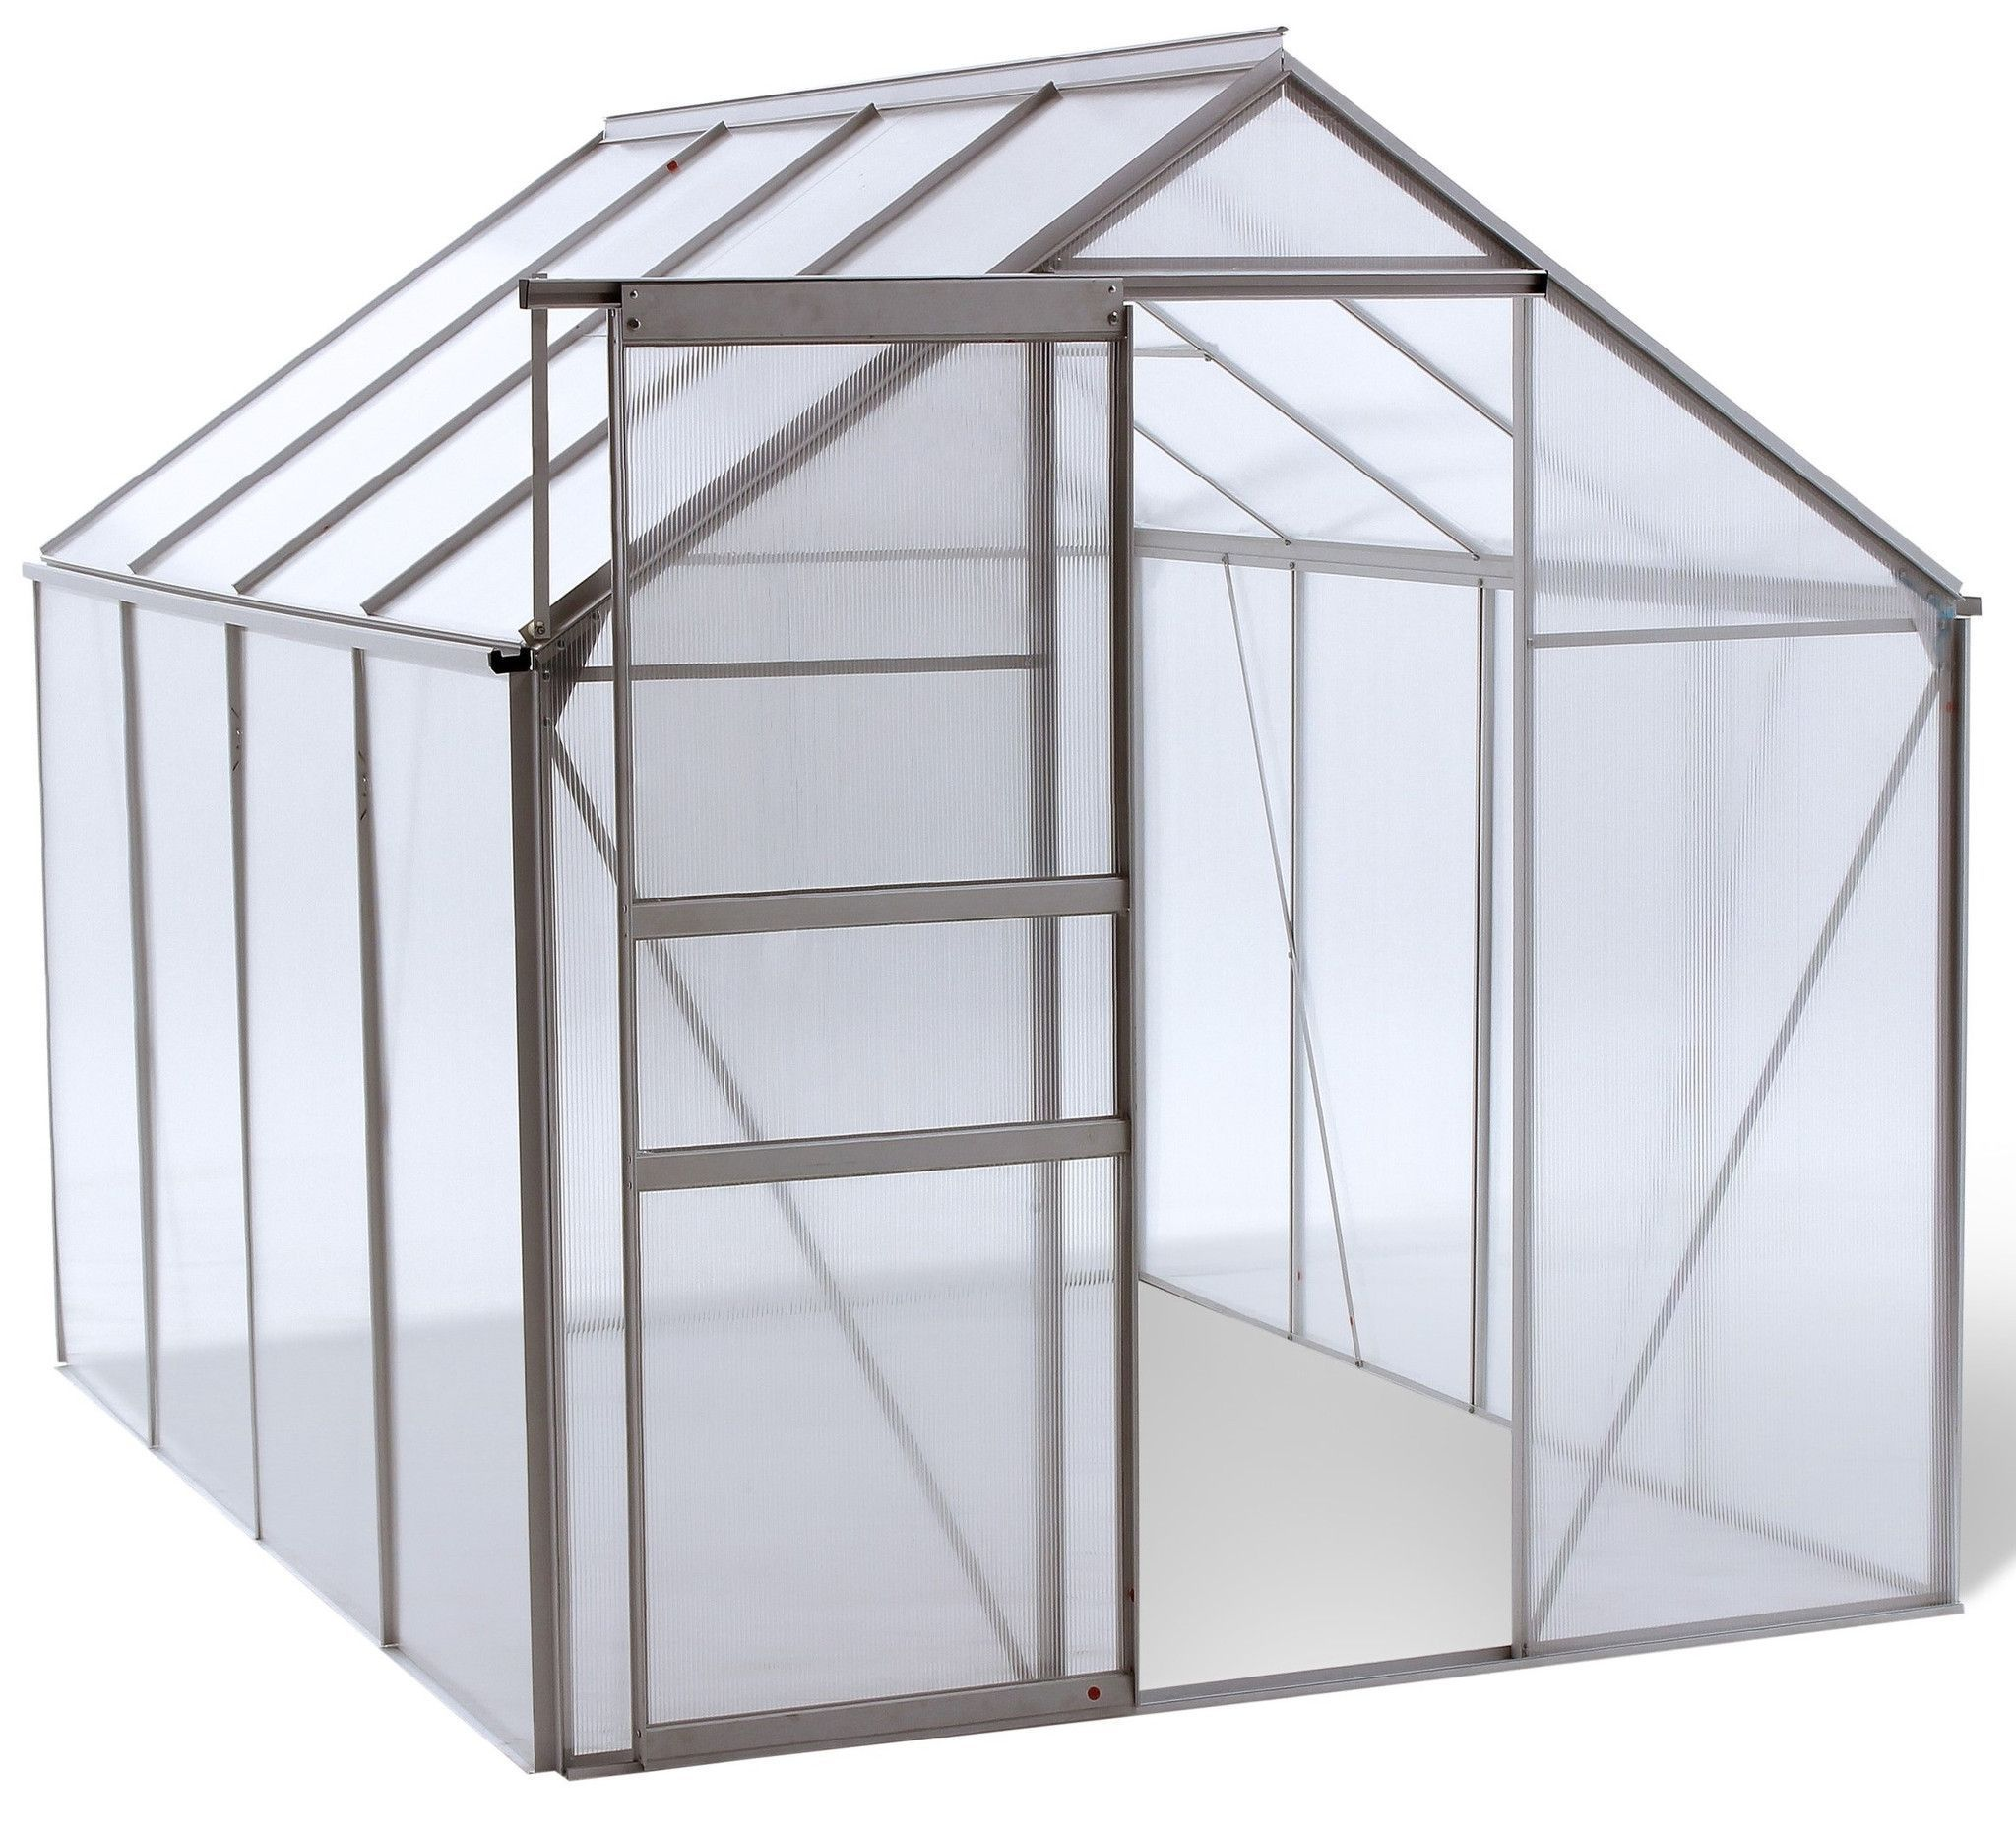 Let Ogrow Bring Your Green Dreams To Life With This Walk In 6 X 8 Lawn And Garden Greenhouse With Heavy Duty Aluminum Frame Gewachshaus Gewachs